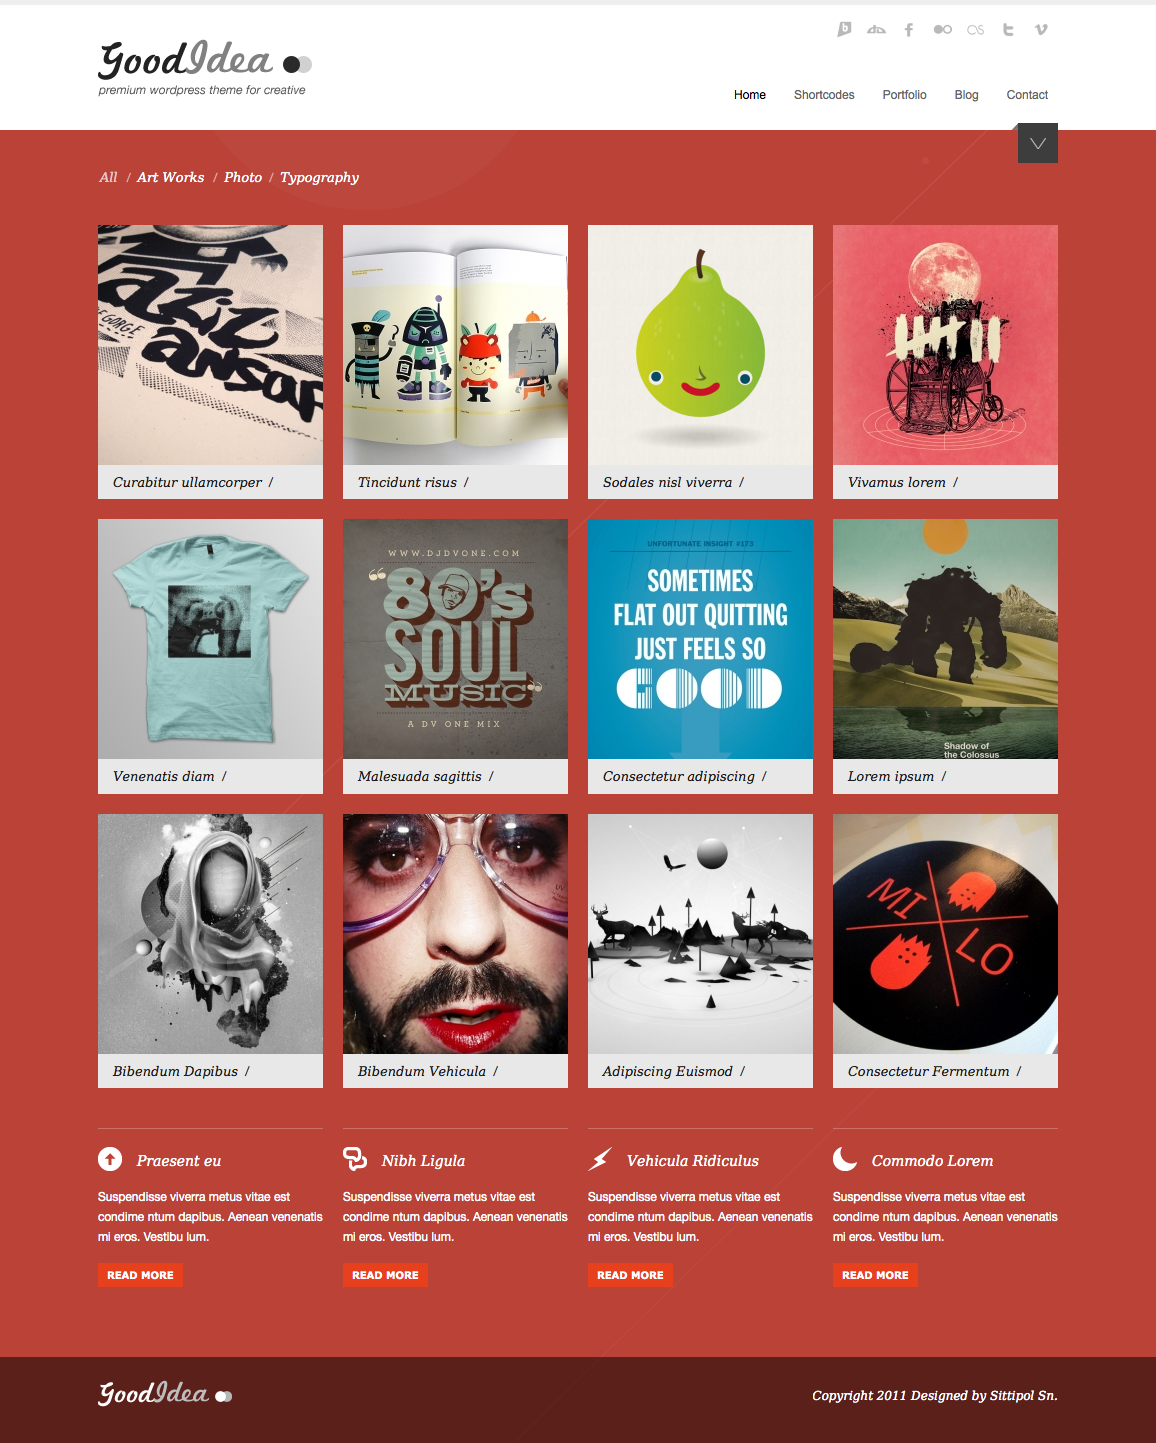 Goodidea - creative wordpress theme - homepage with red